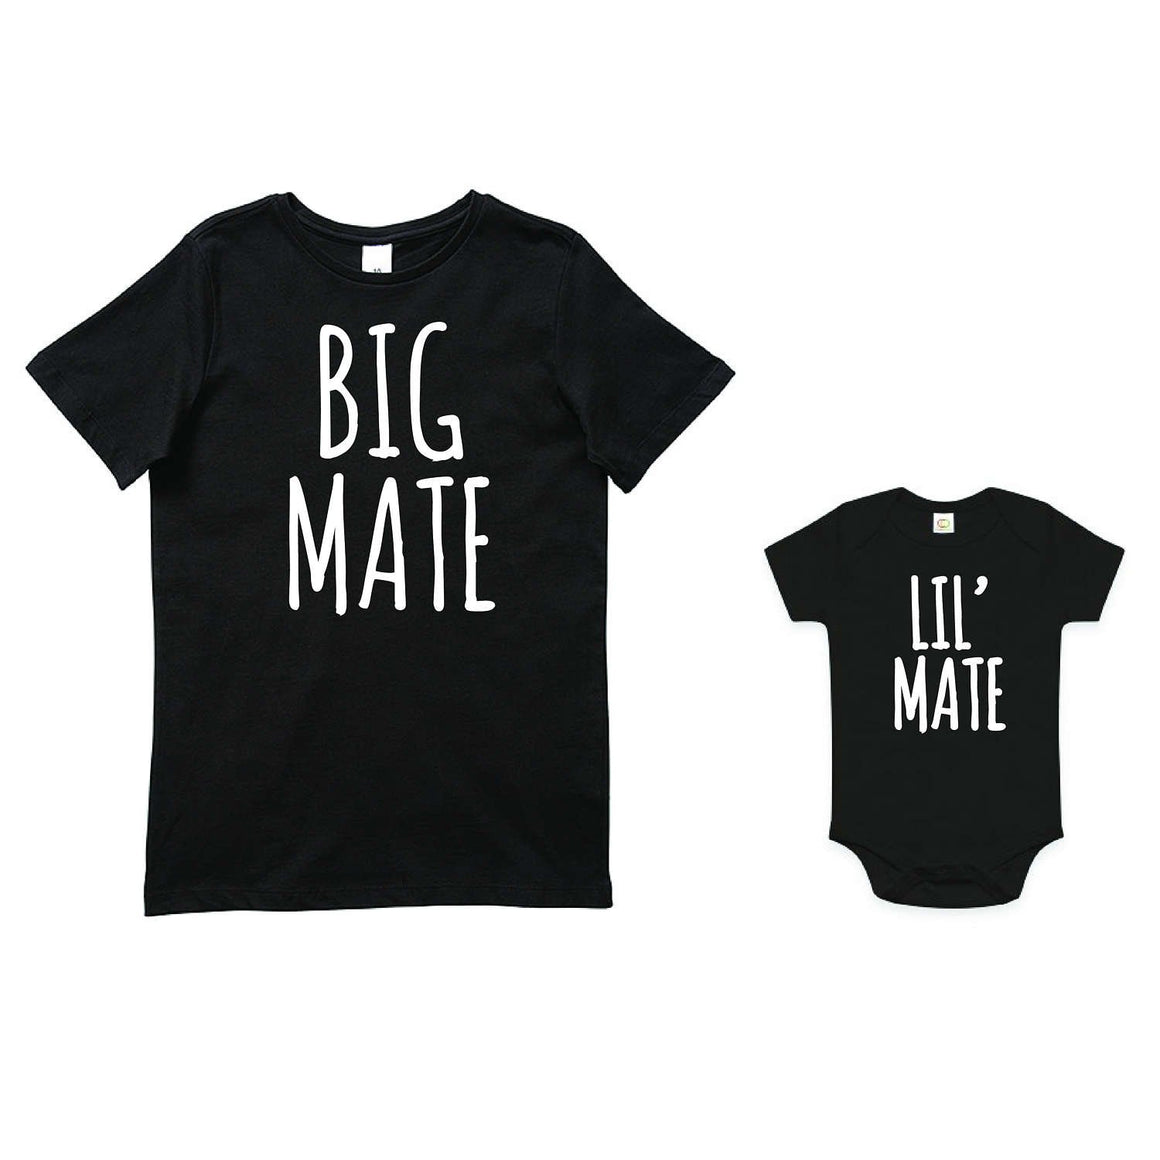 Big Mate Lil' Mate Set, Friends Set, Brother Set, Sibling Set, Brother Gift, Pregnancy Announcement, Reveal Outfits, Family Tees, Australian